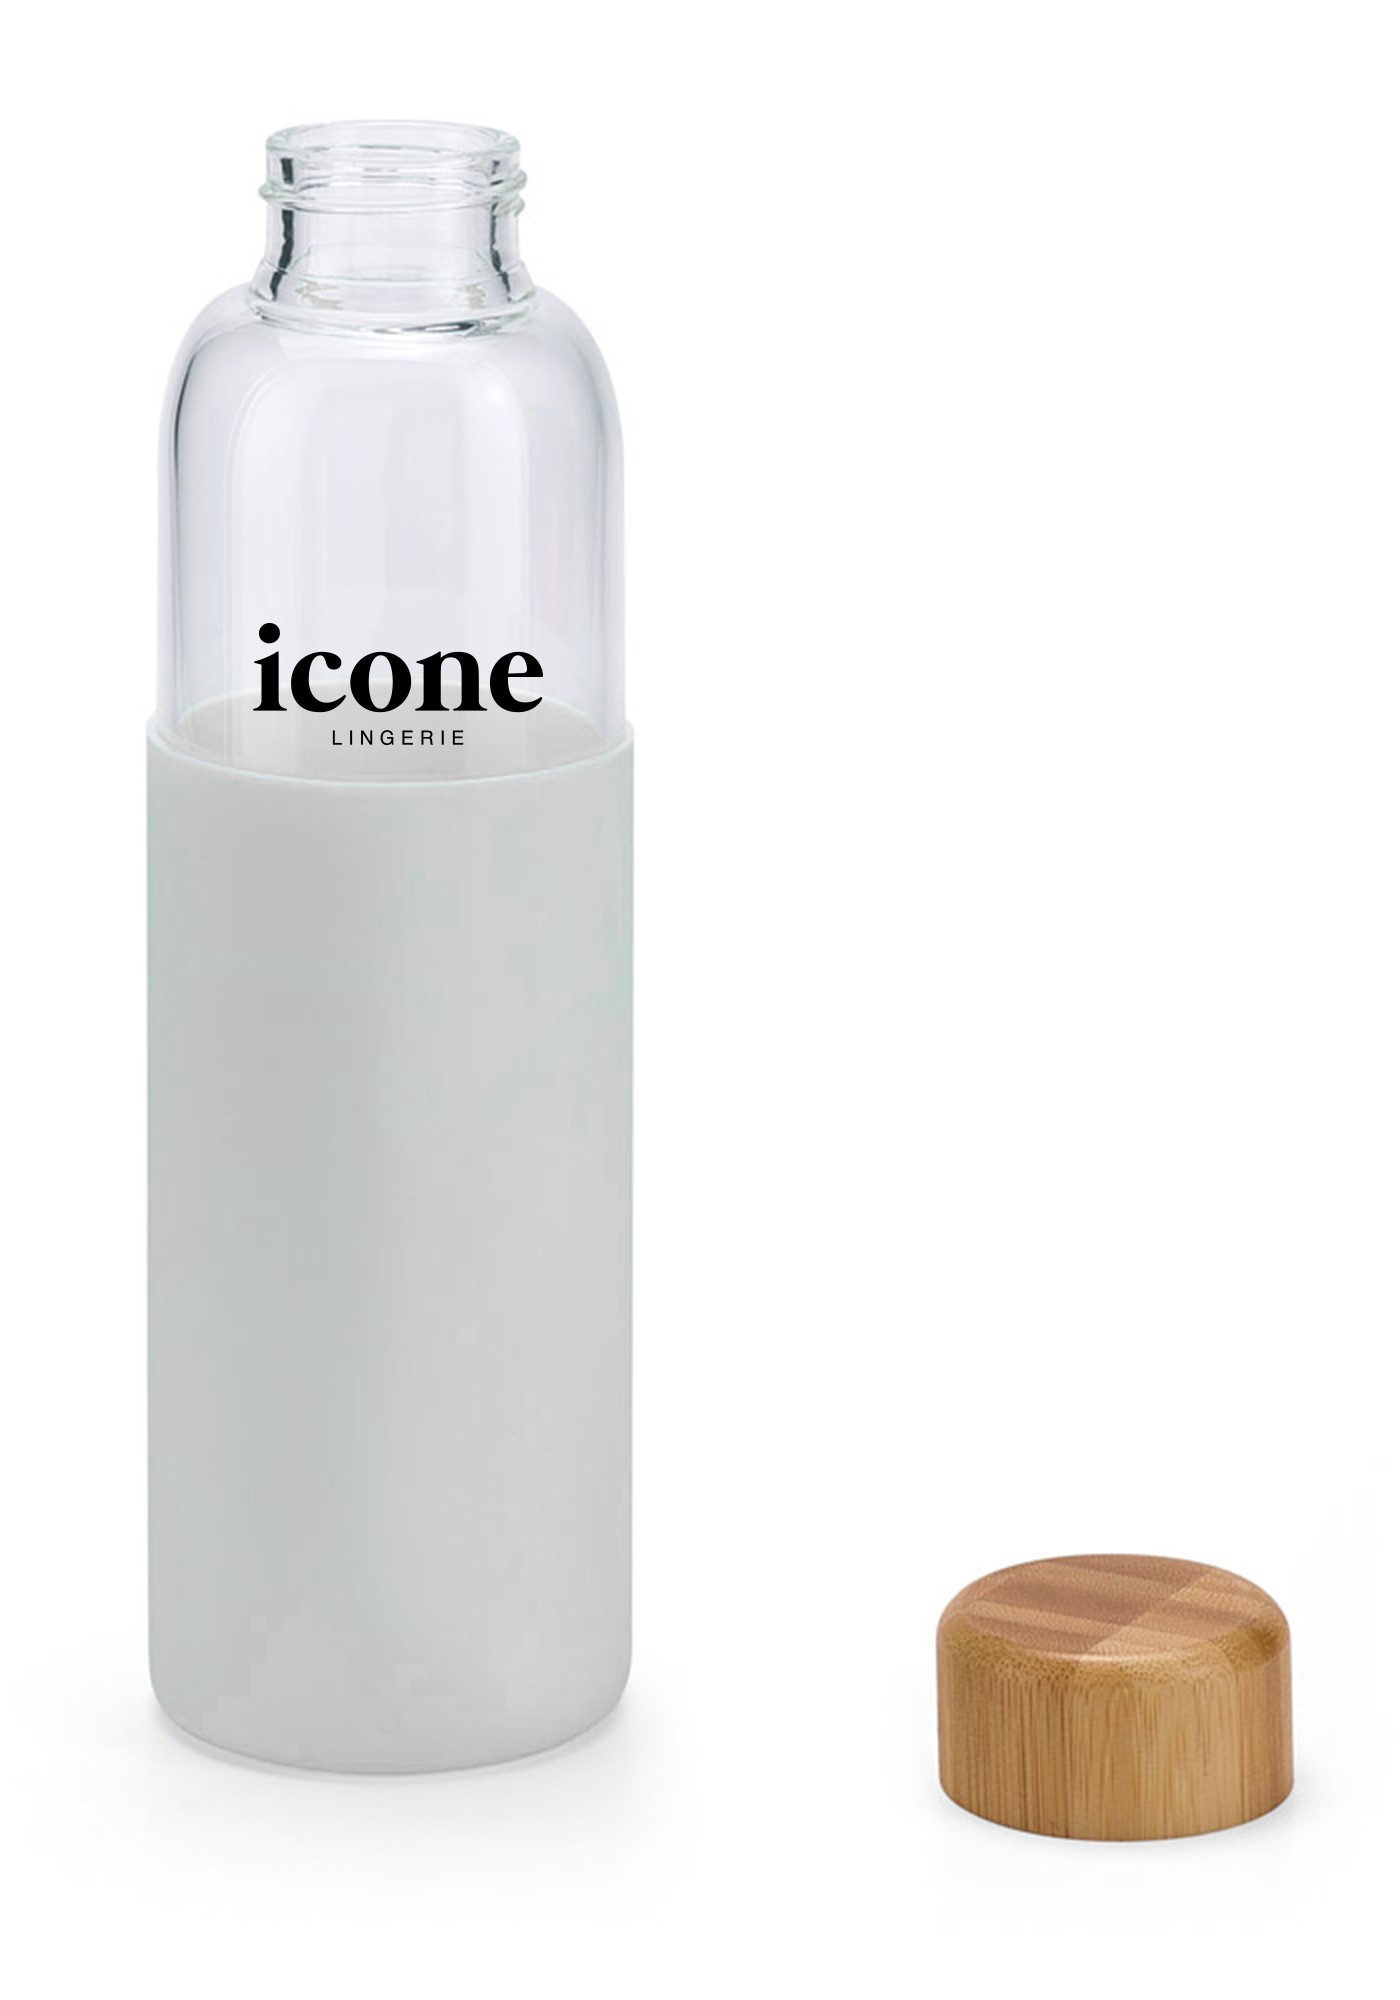 Icone glass bottle